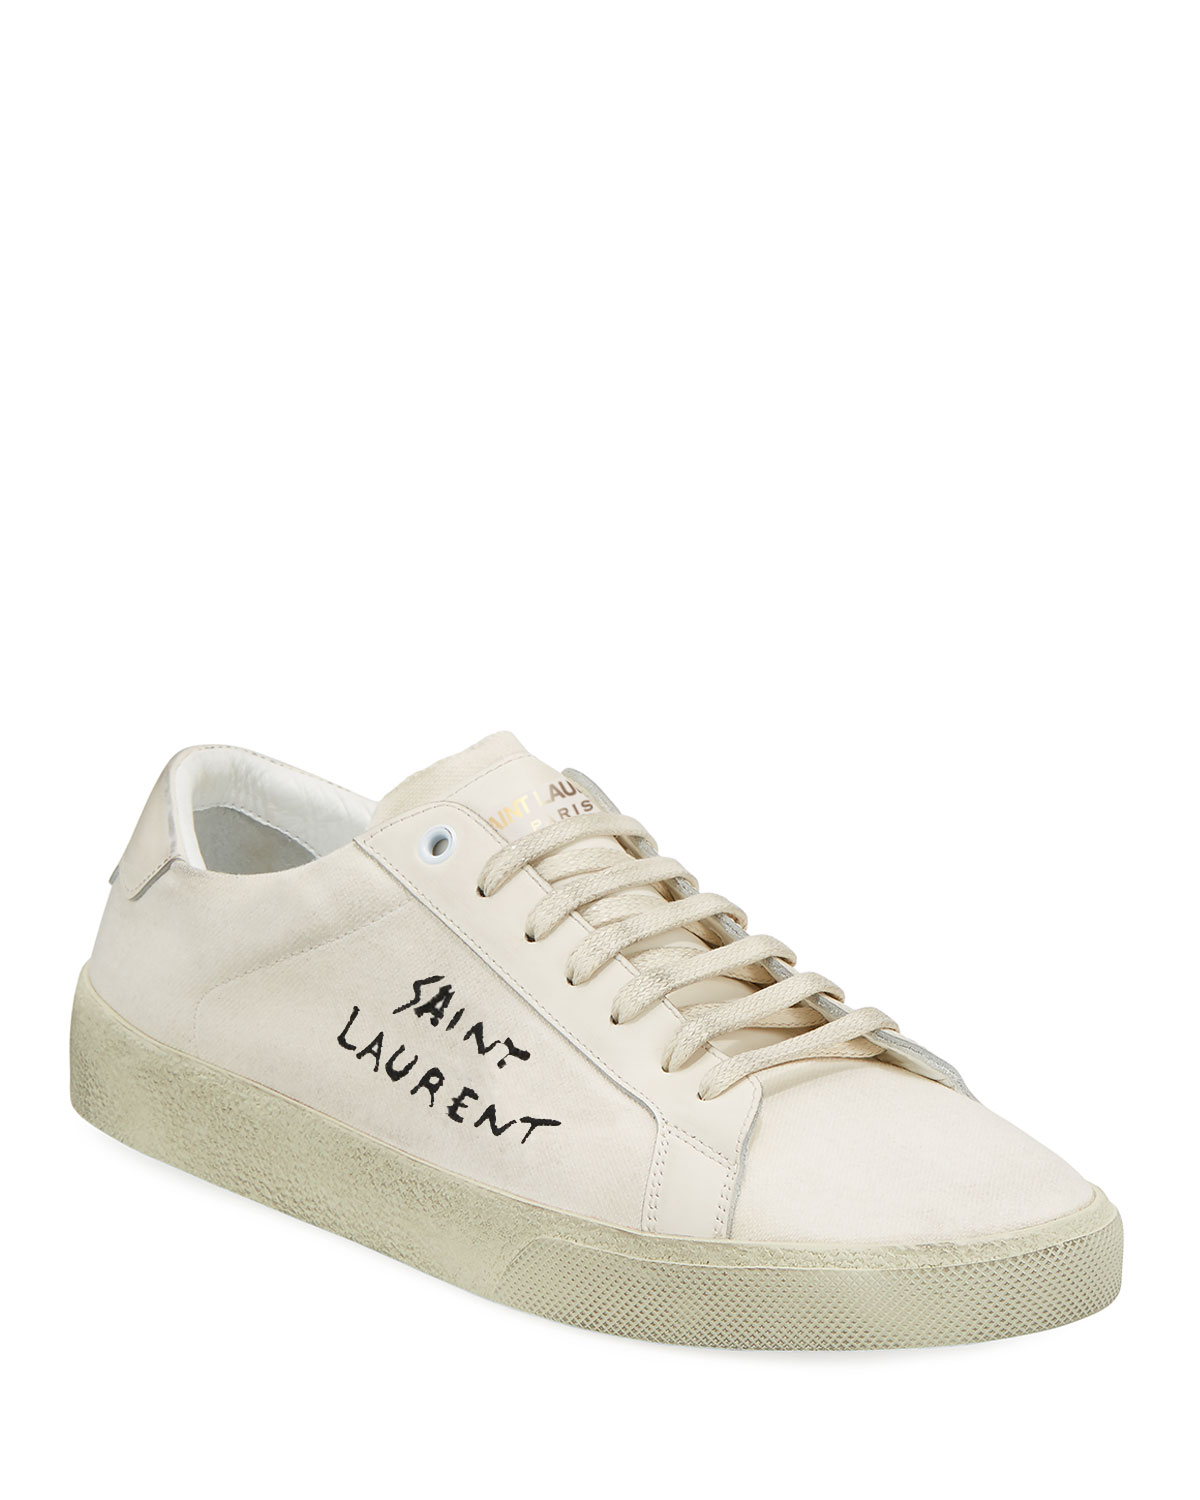 680a478ab20 Saint Laurent Men's Canvas Low-Top Sneakers, White | Neiman Marcus